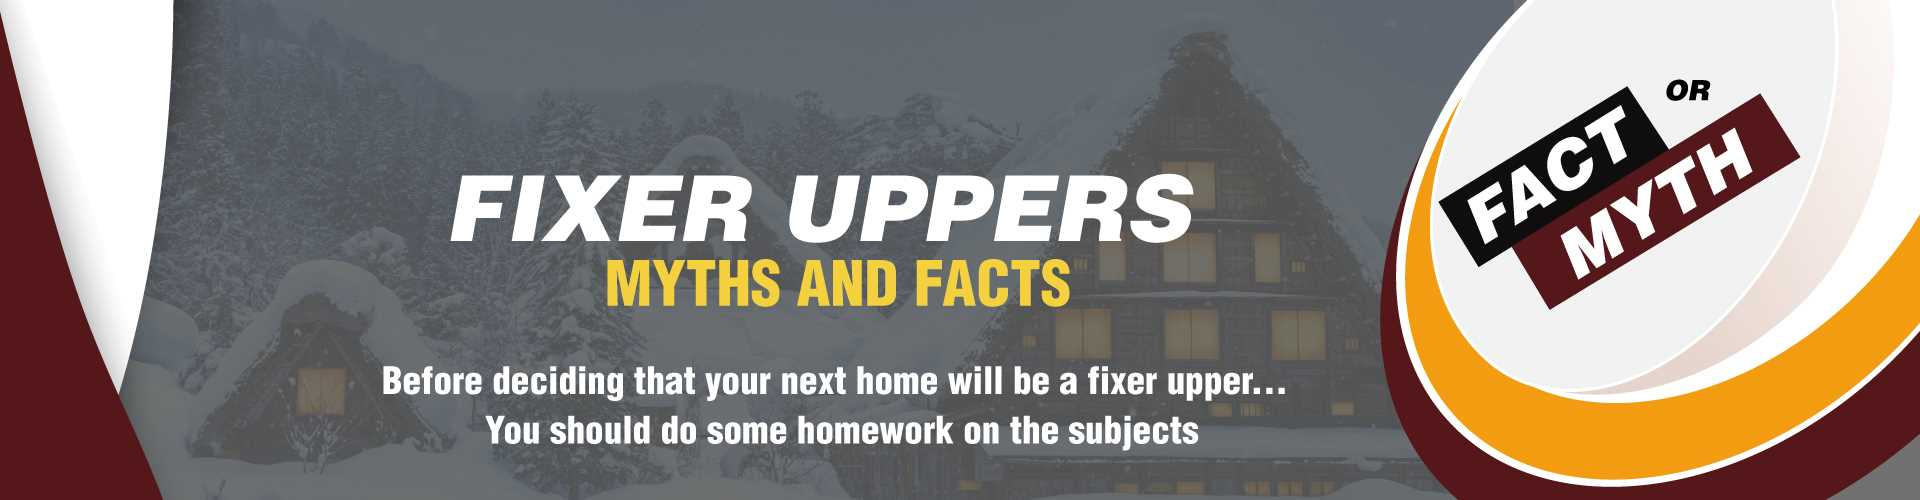 Fixer Uppers - What You Should Know Before You Buy  Image